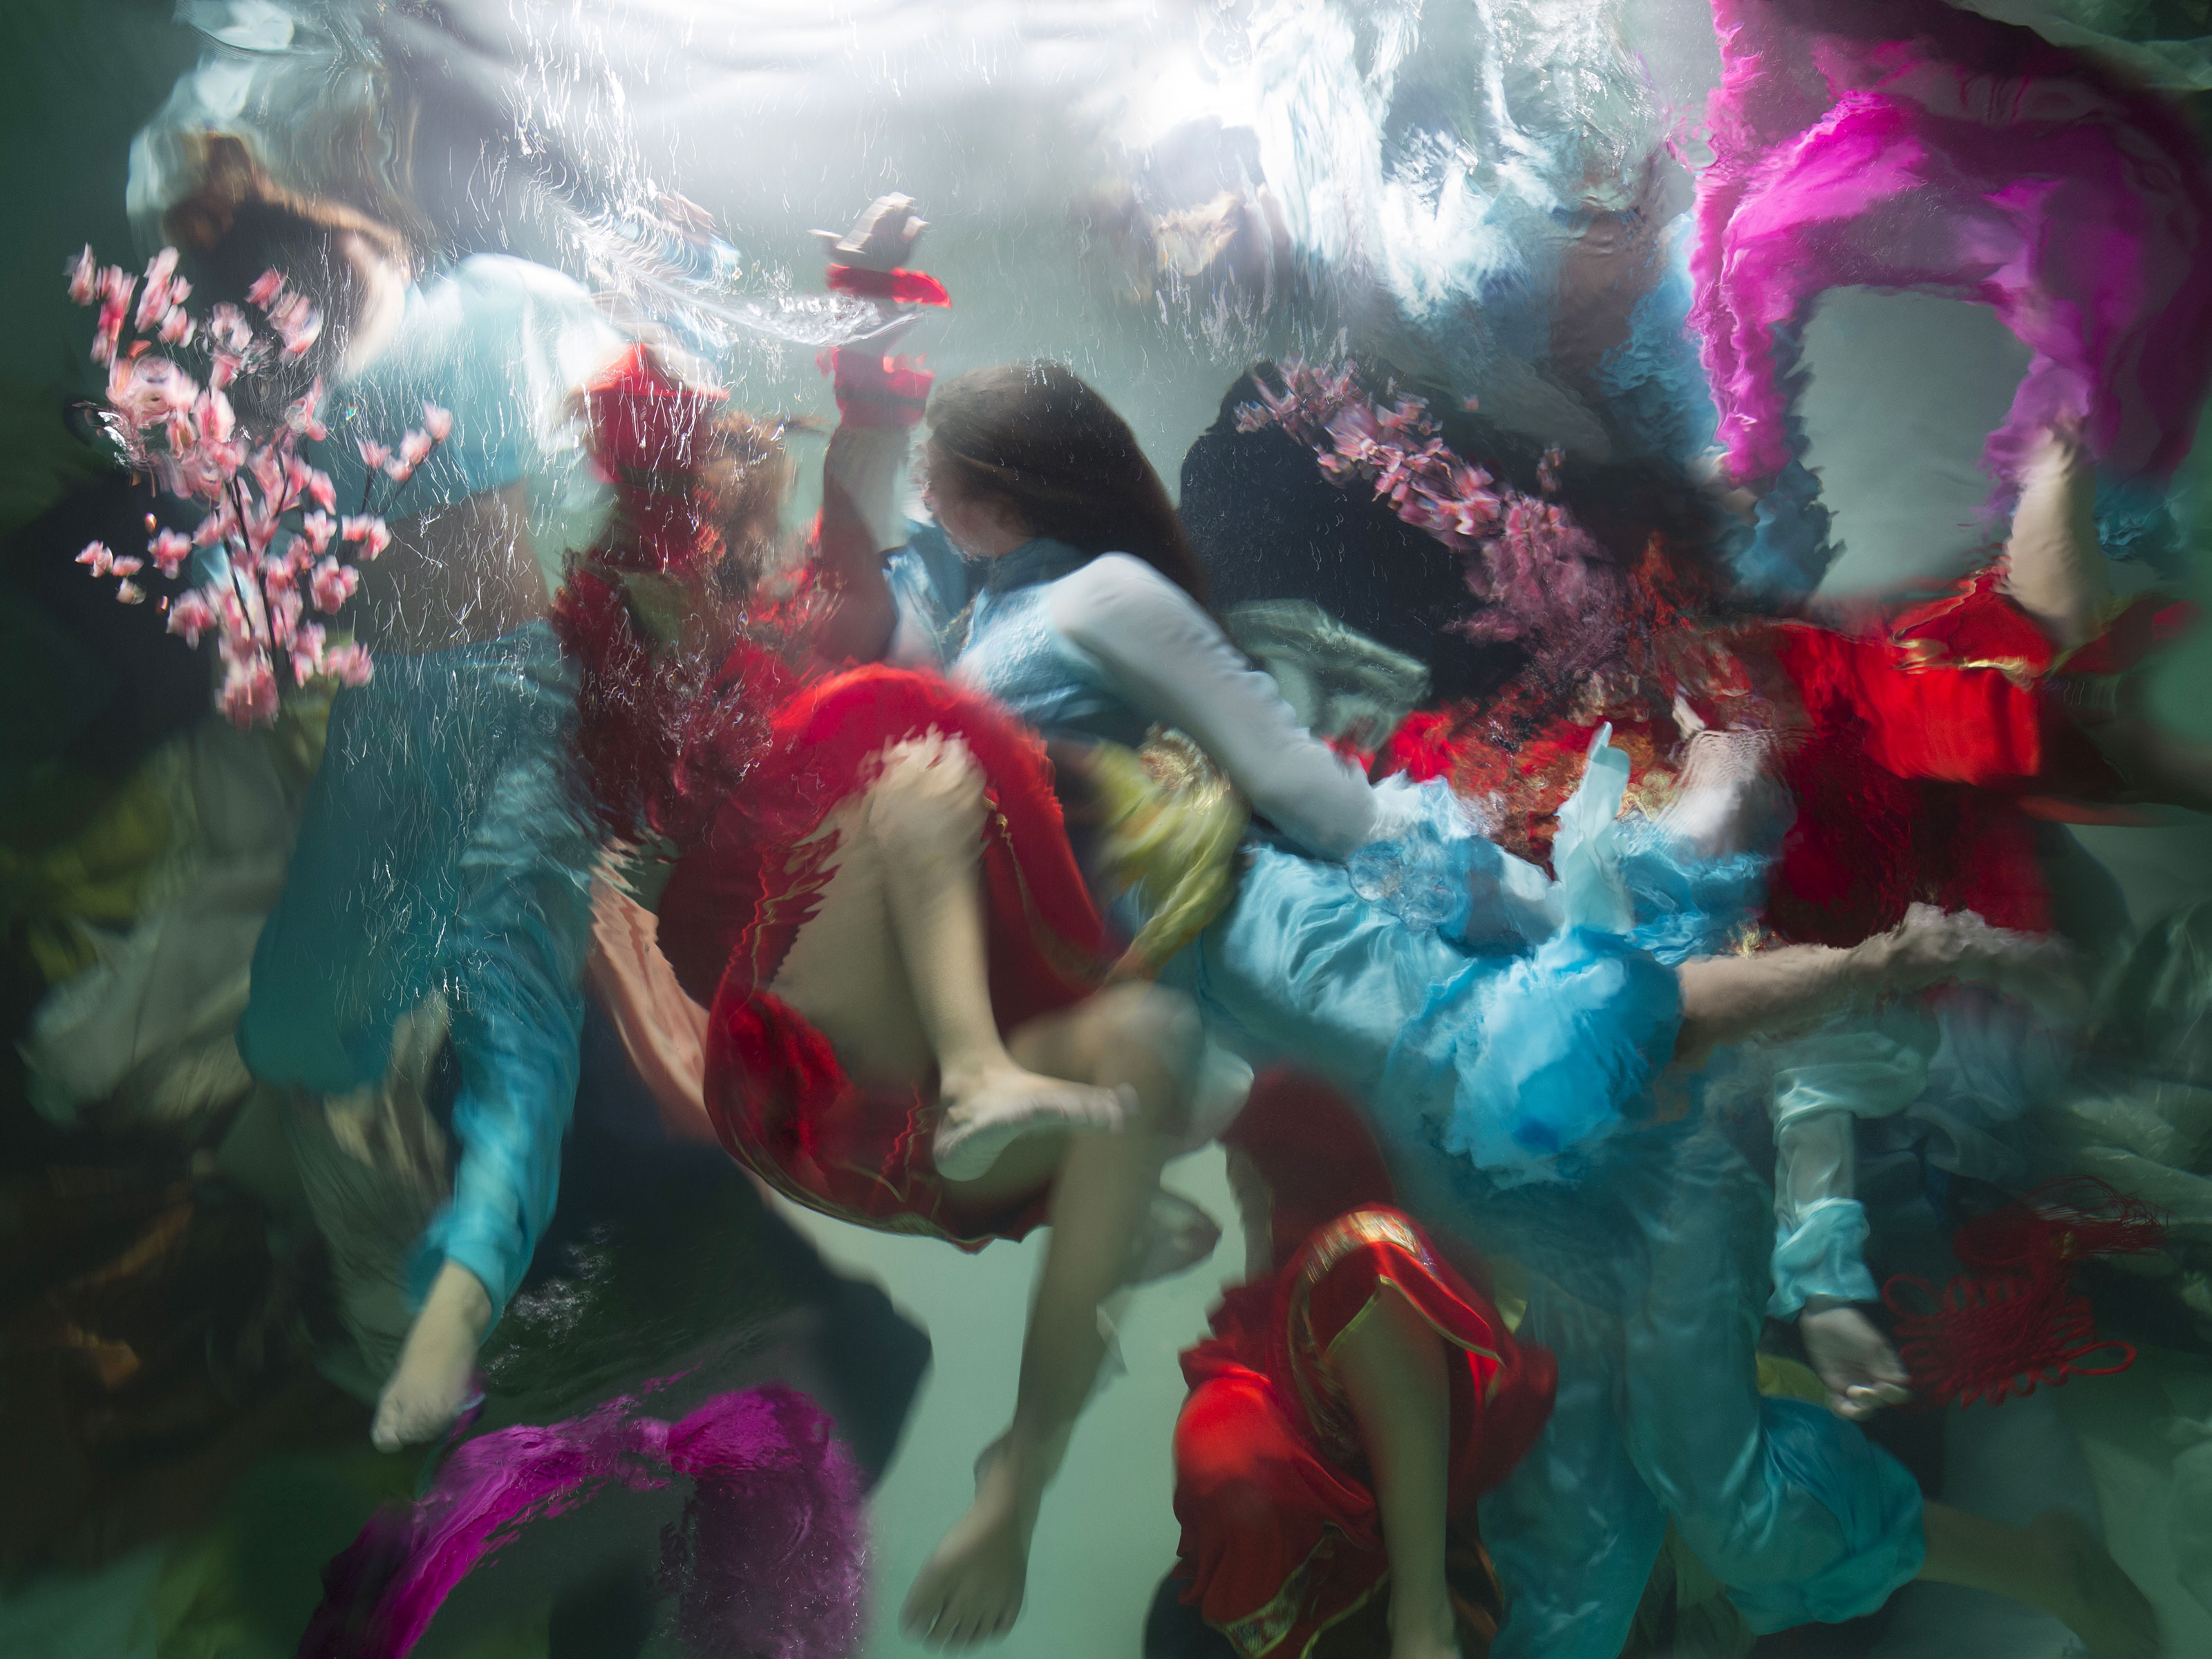 CHRISTY LEE ROGERS  - World Photography Award